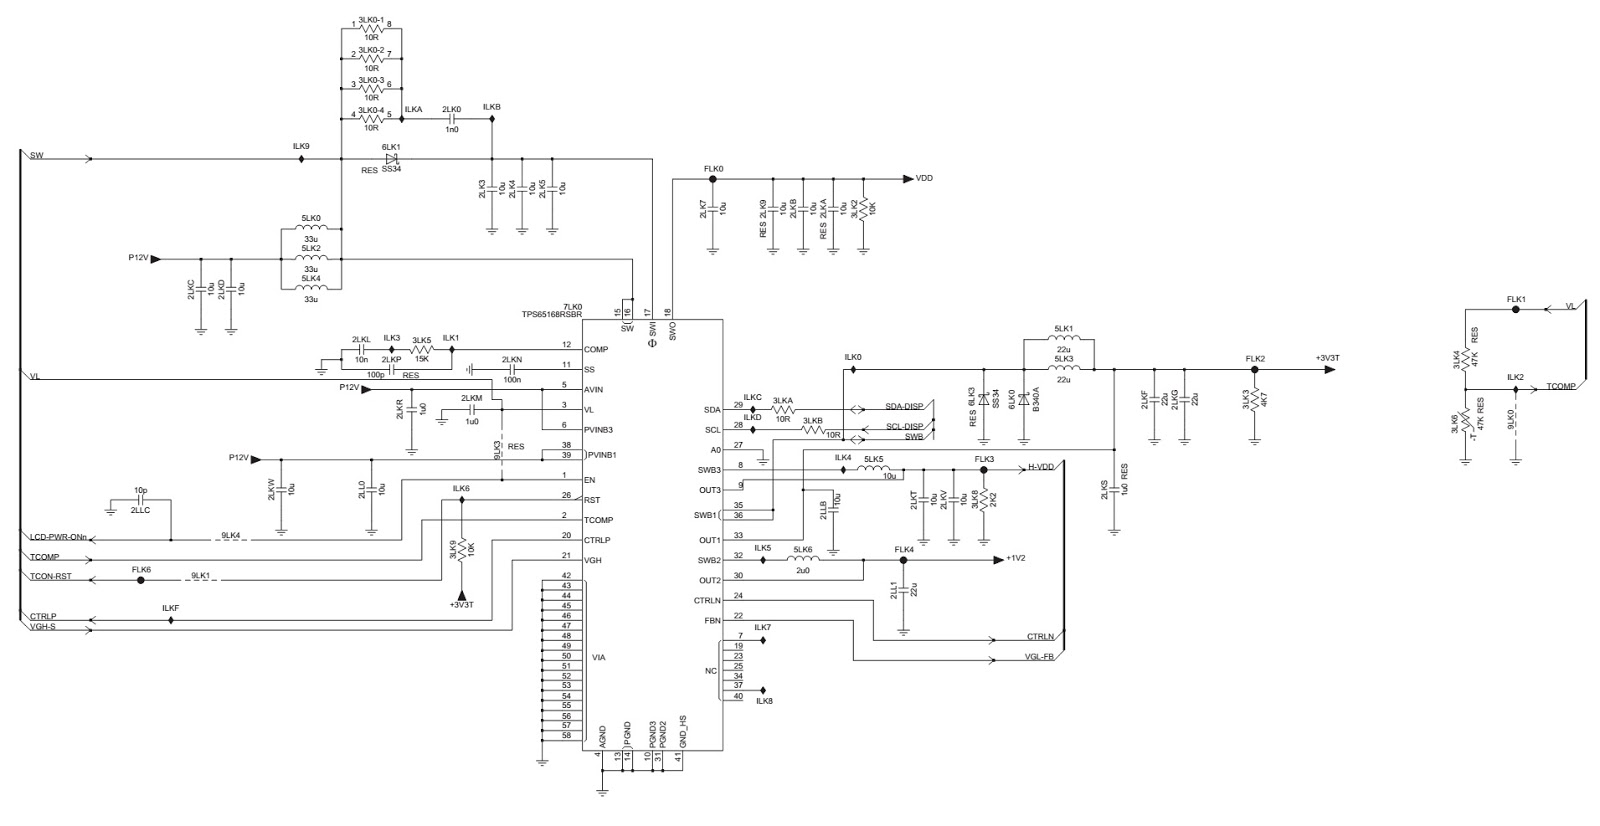 T Con Board Circuit Diagram | Wiring Liry Philips Lcd Tv Schematic Diagrams on